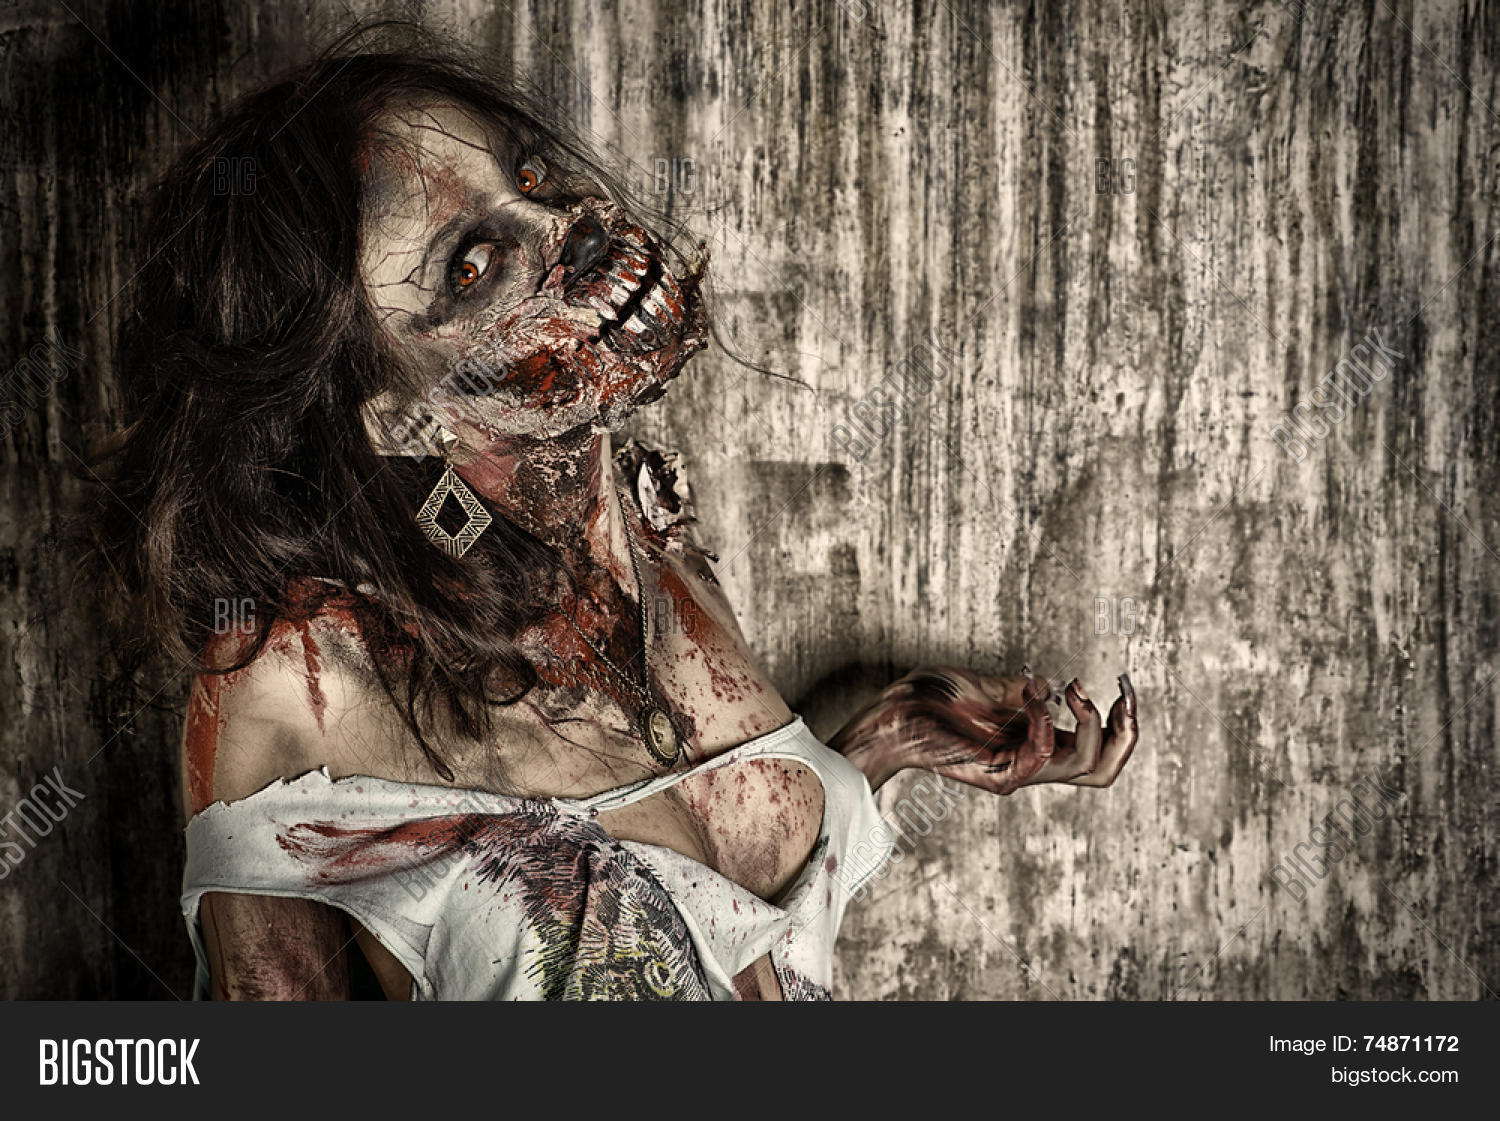 Close- Portrait Scary Bloody Zombie Image & Photo | Bigstock